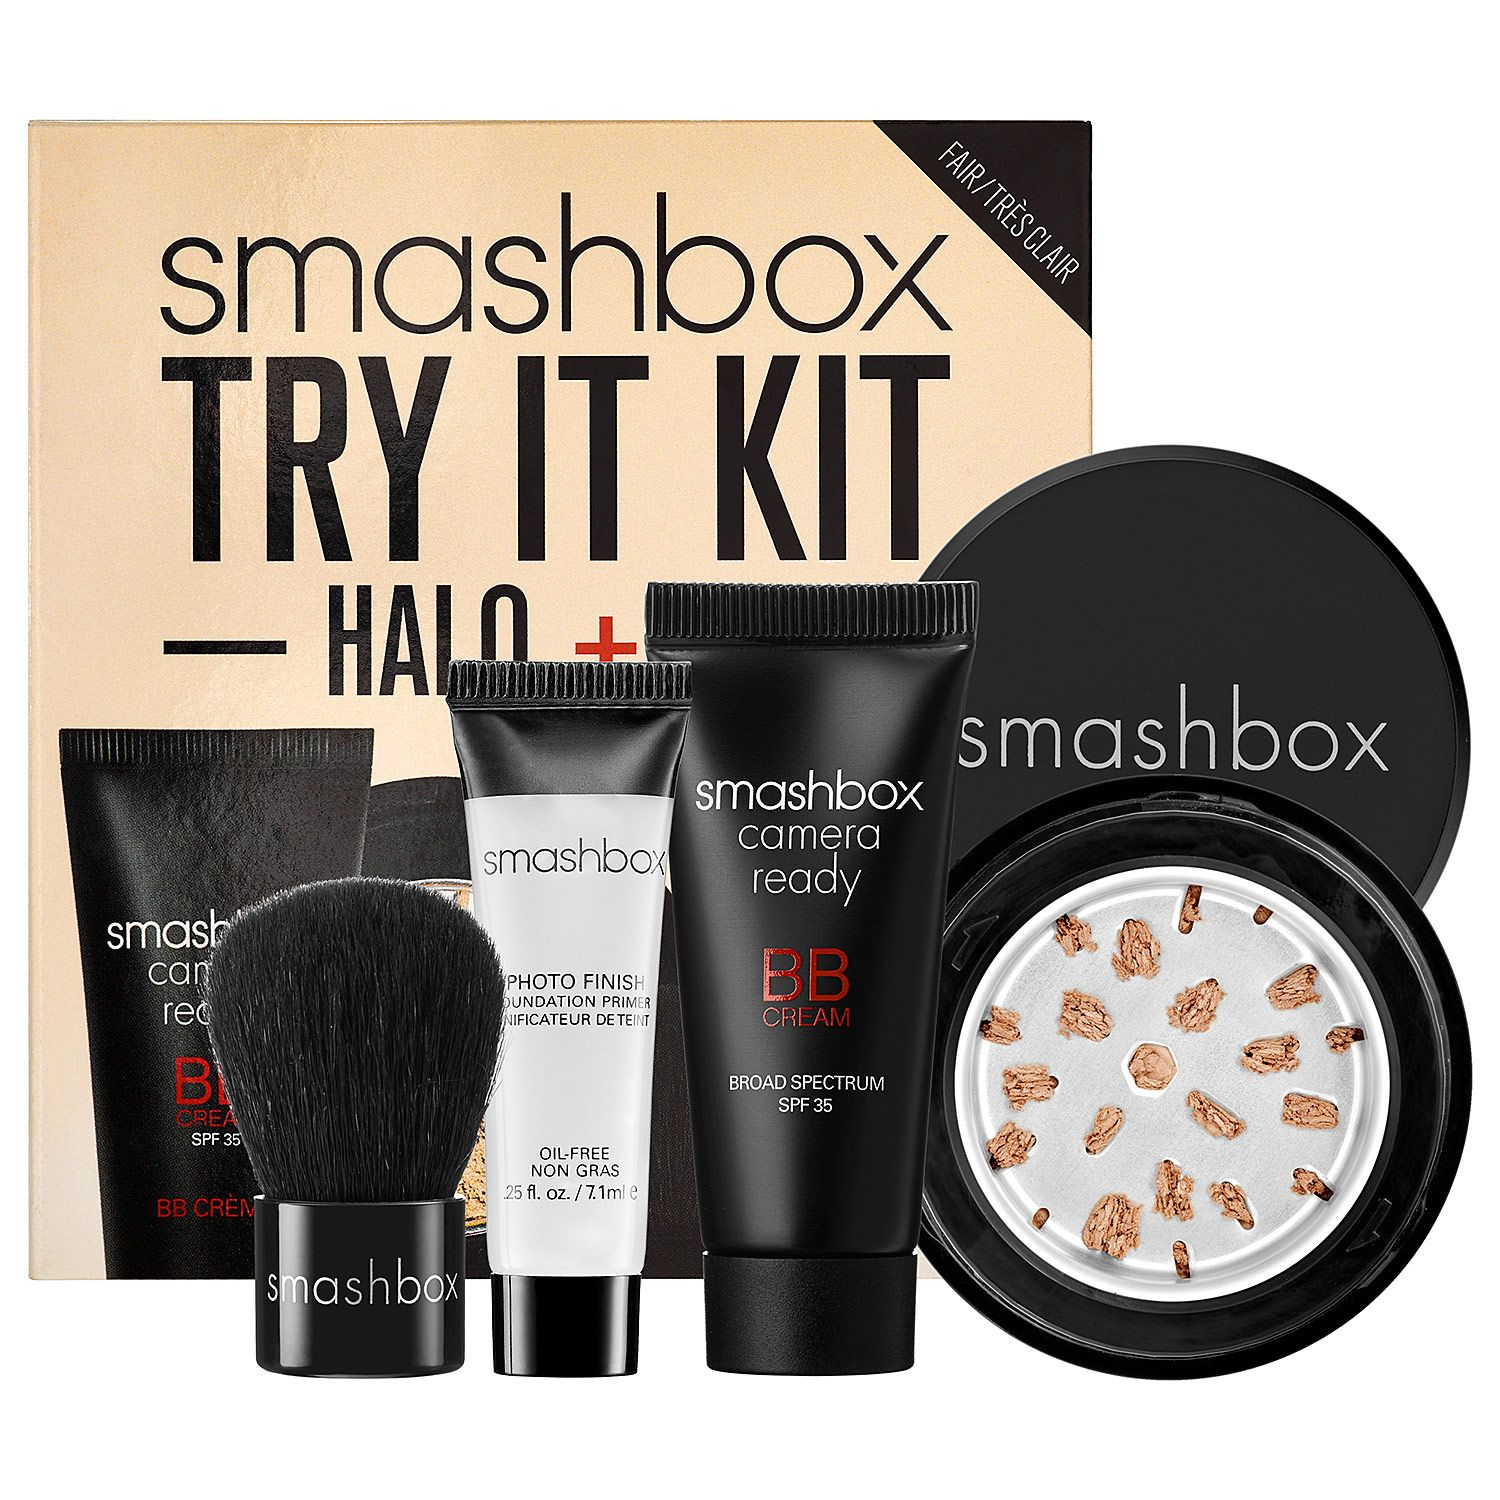 Smashbox Try It Kit Halo + BB features a travelsize